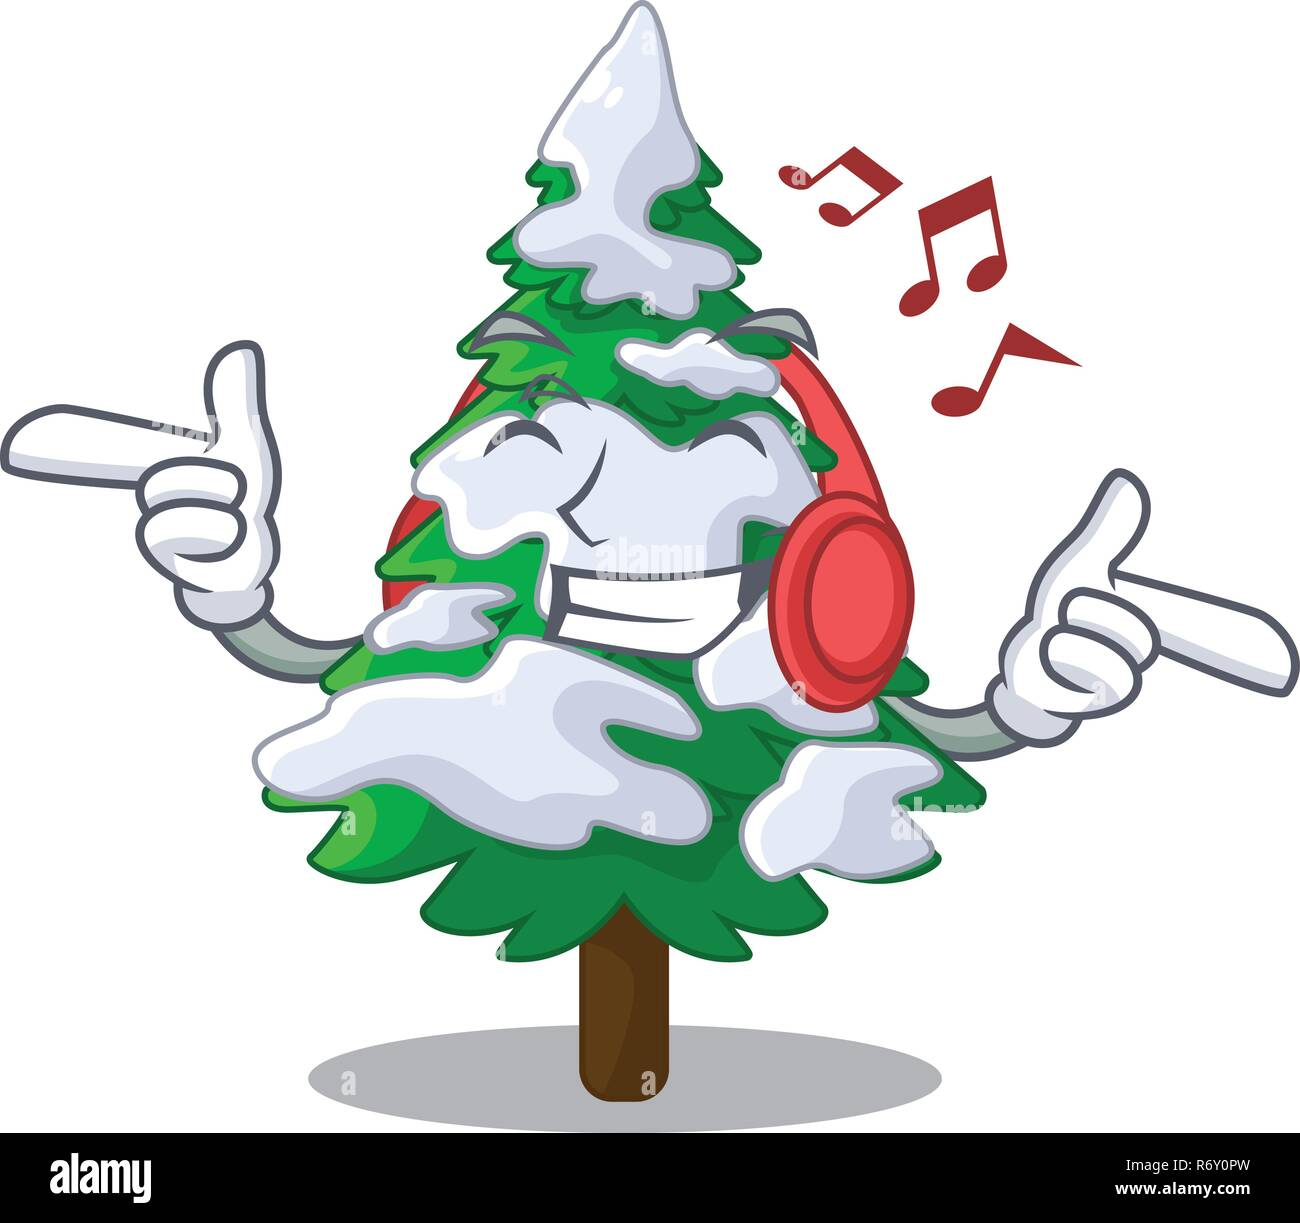 Listening Music Realistic Fir Tree In Snow Mascot Stock Vector Image Art Alamy Affordable and search from millions of royalty free images, photos and vectors. alamy